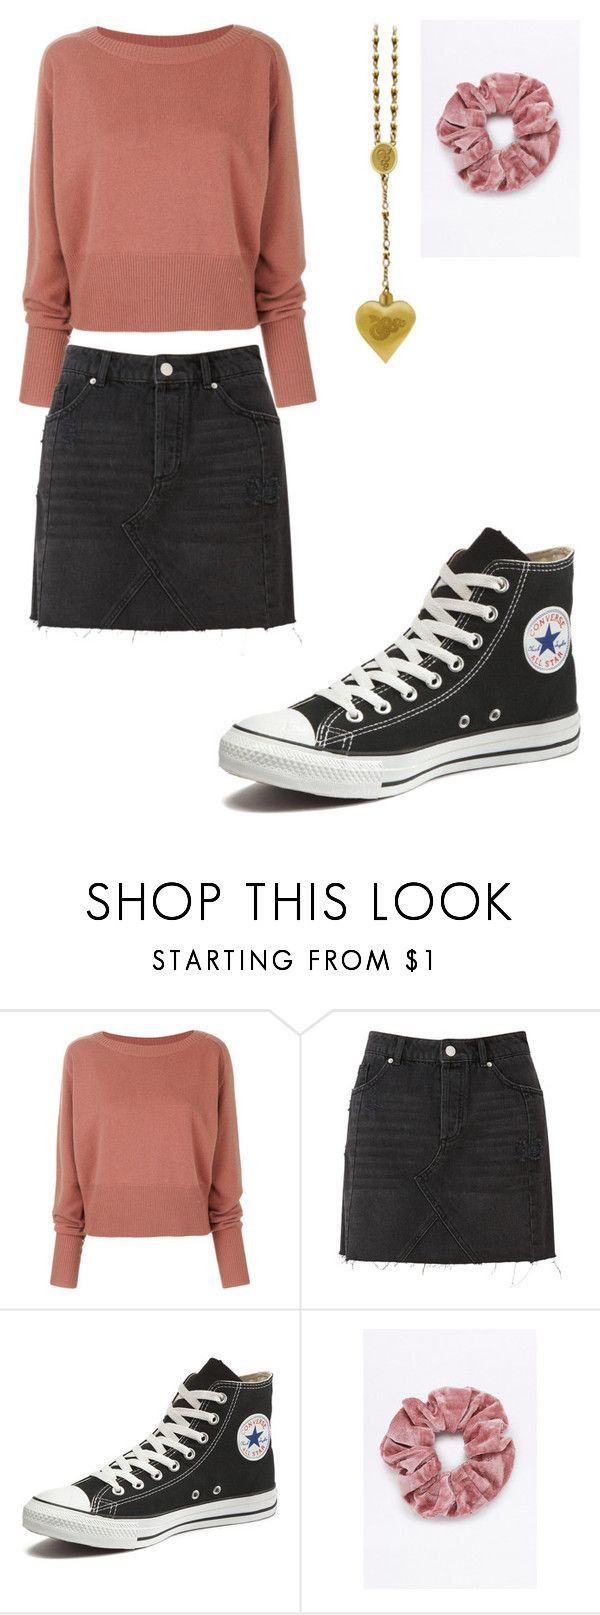 samantha - outfit 8 by electrasweetheart on Polyvore featuring Theory, Miss Selfridge and Converse